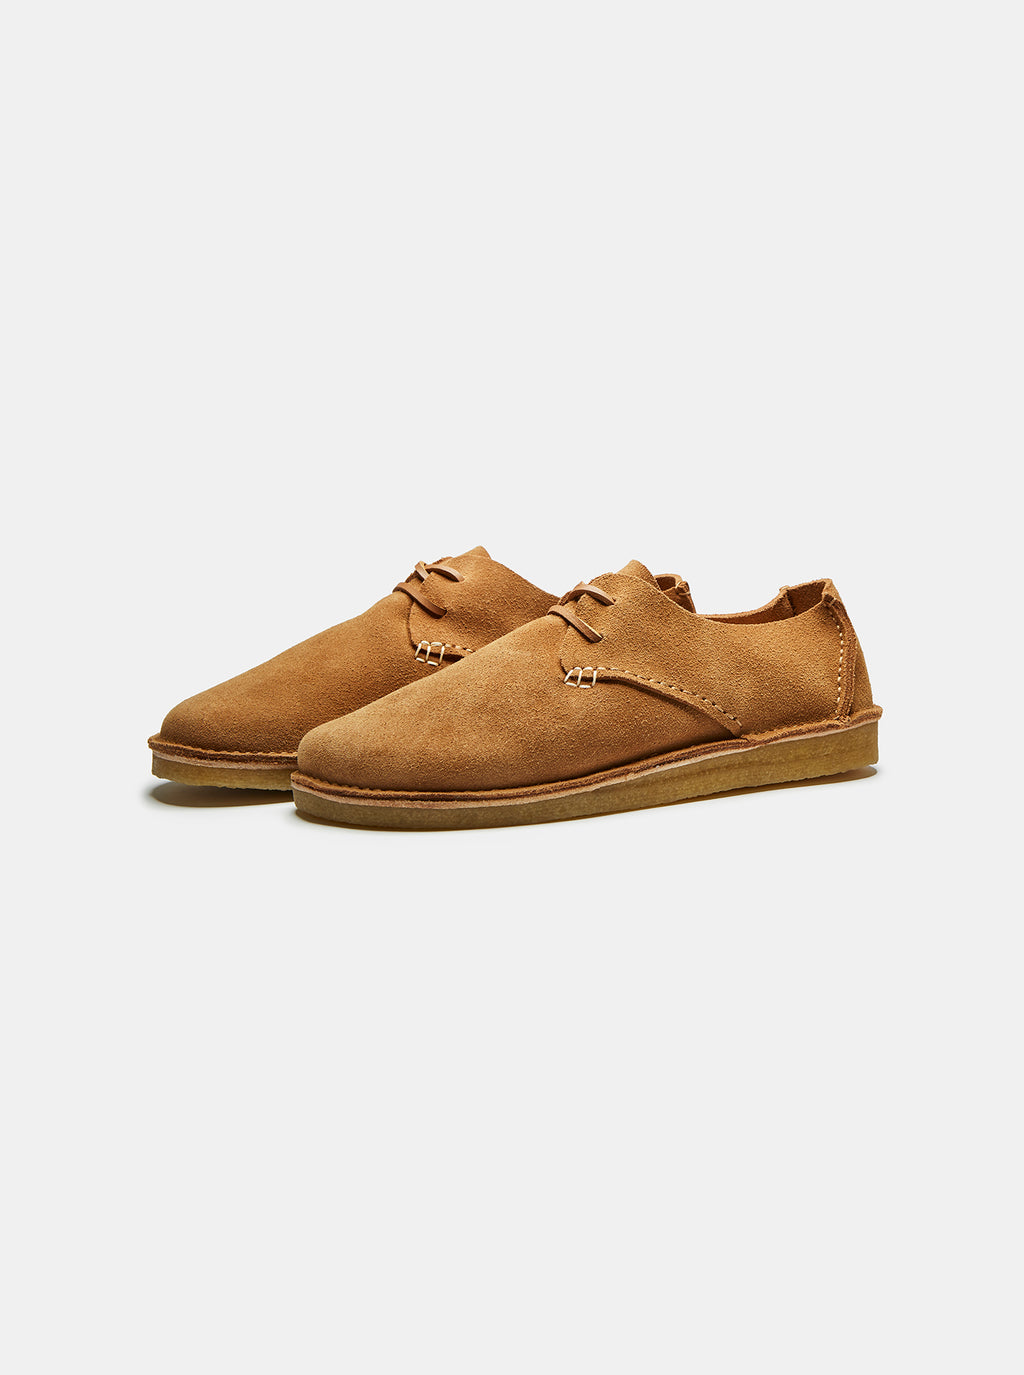 Caden Suede Lace-up Tan